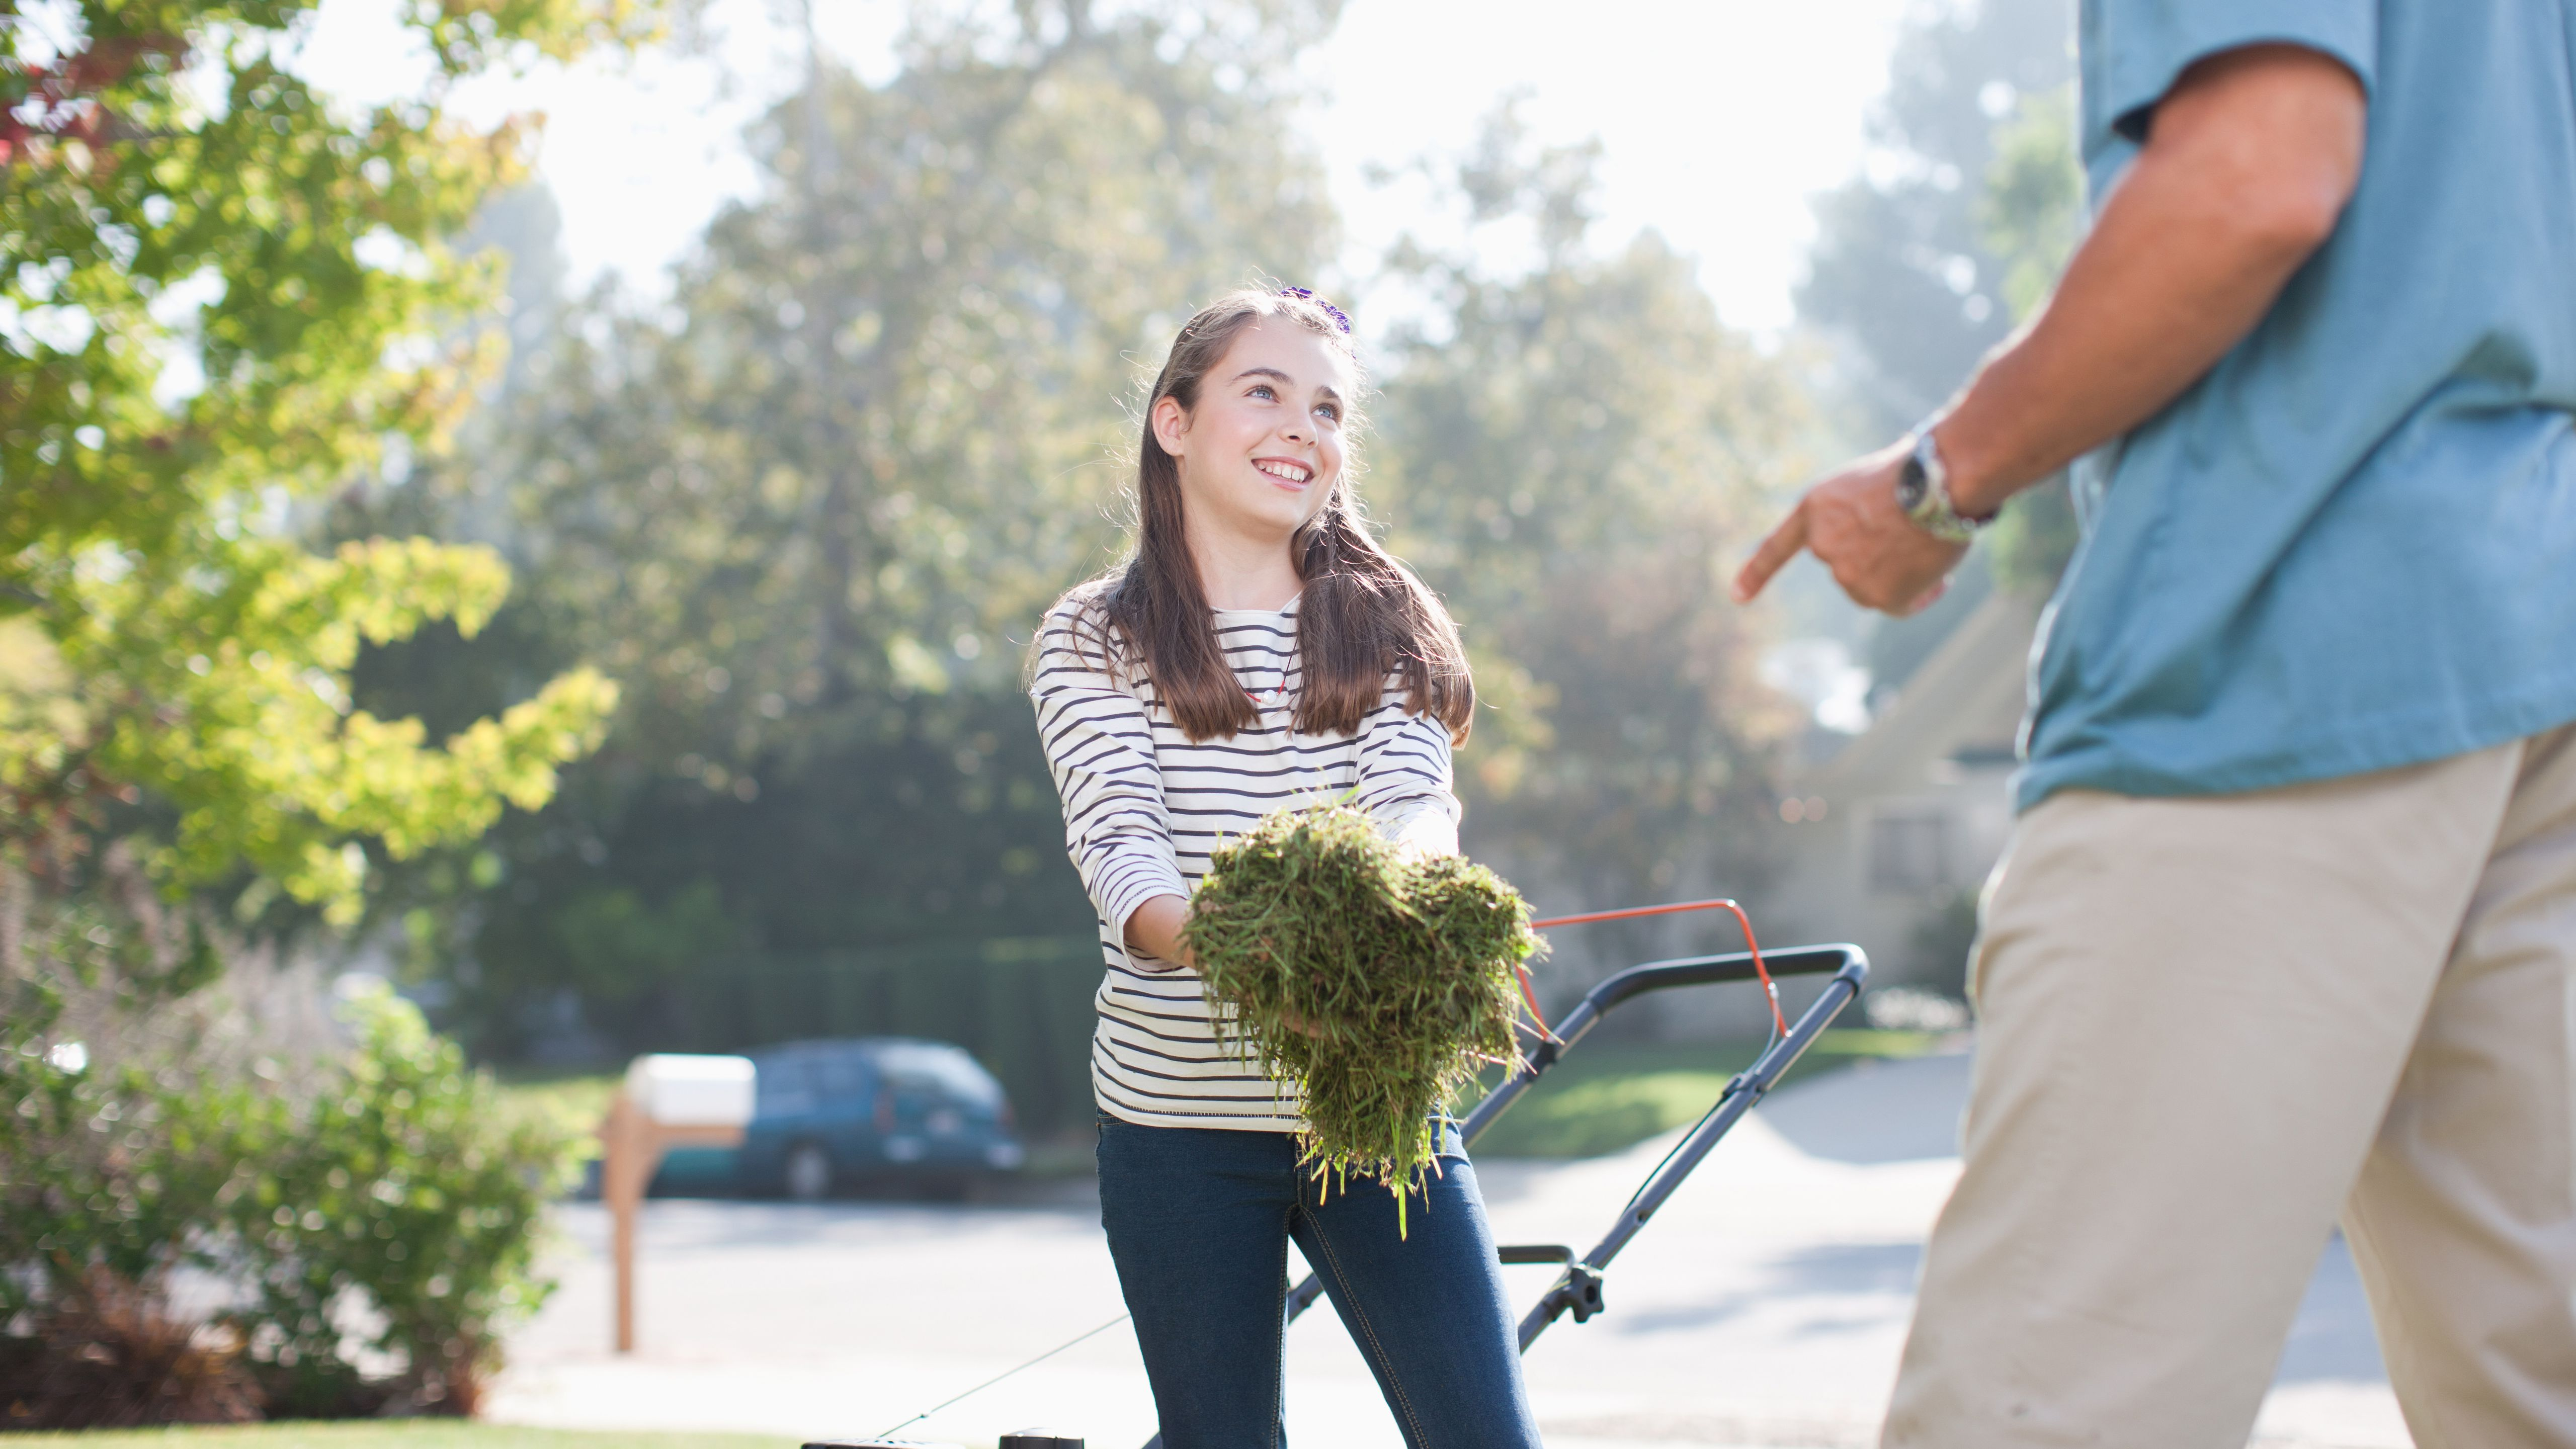 The Pros And Cons Of S Mowing Lawns